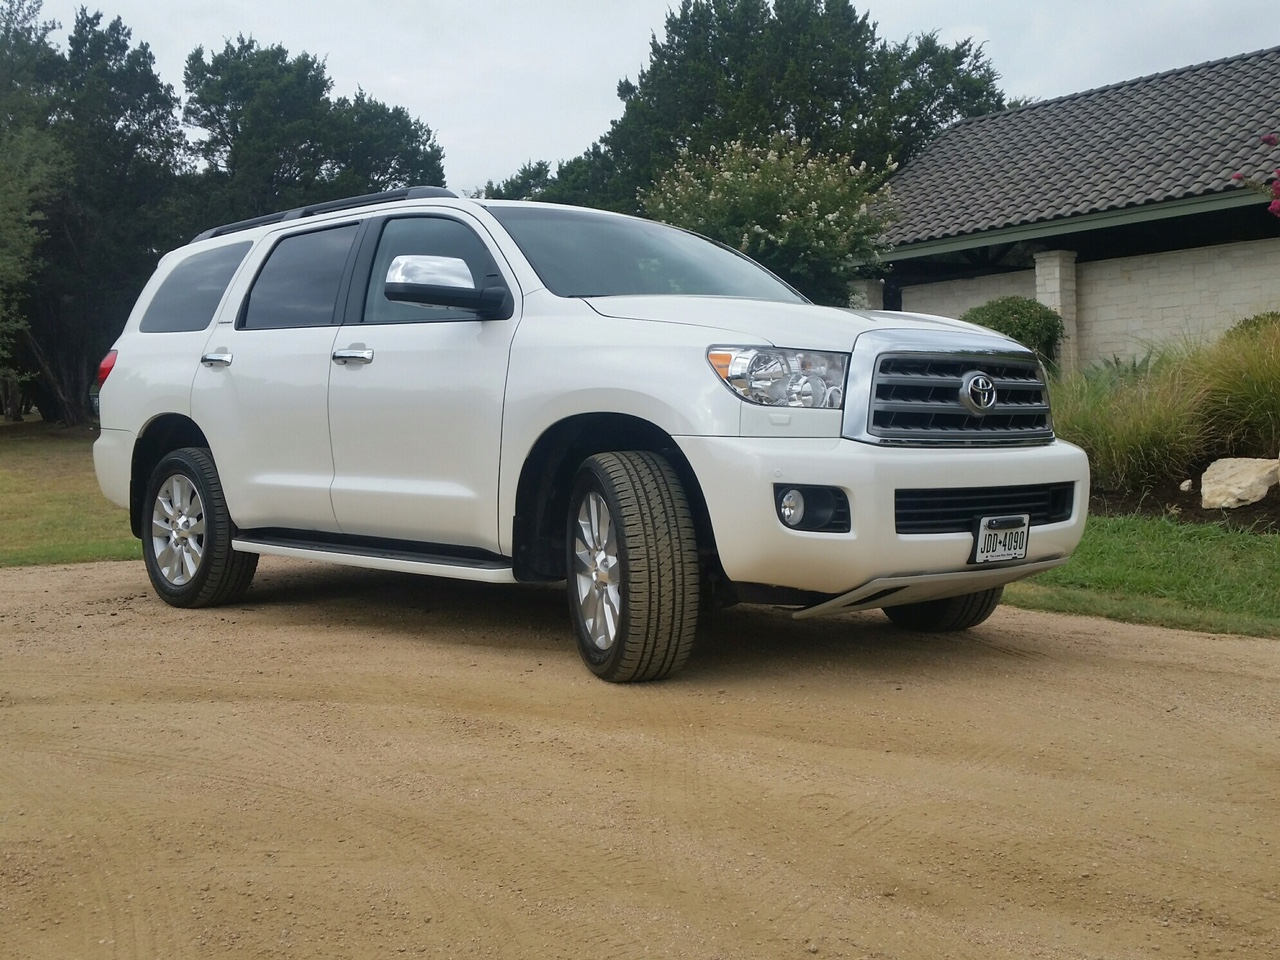 2017 toyota sequoia platinum 4x4 a right choice for a. Black Bedroom Furniture Sets. Home Design Ideas